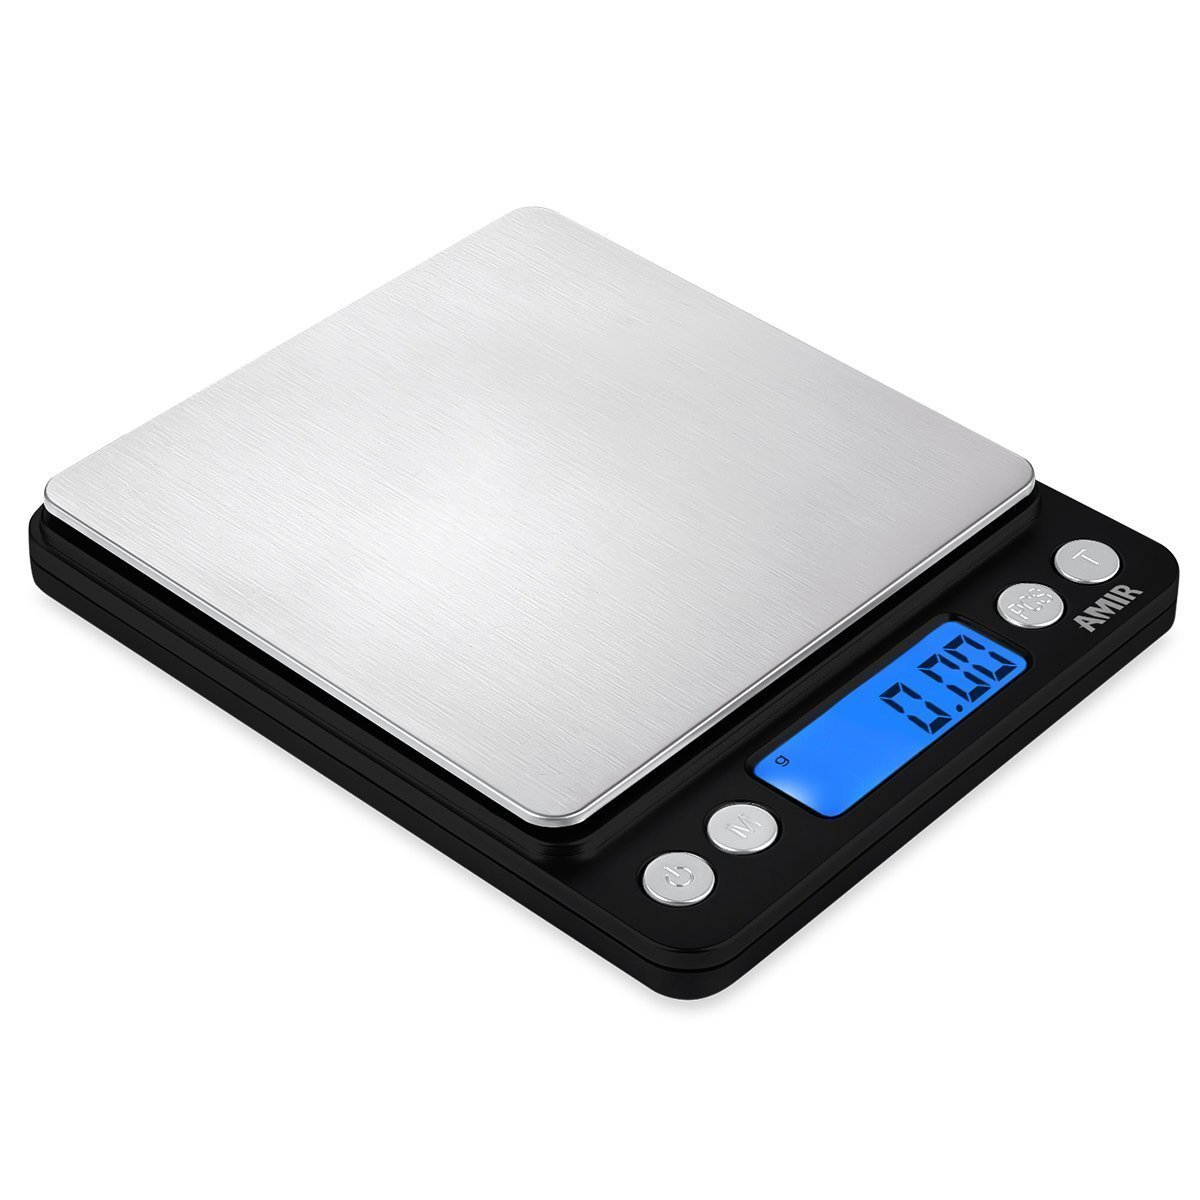 Amir digital kitchen scale 500g 0 01g pro cooking scale with back lit lcd display accuracy pocket food scale 6 units auto off tare pcs function stainless